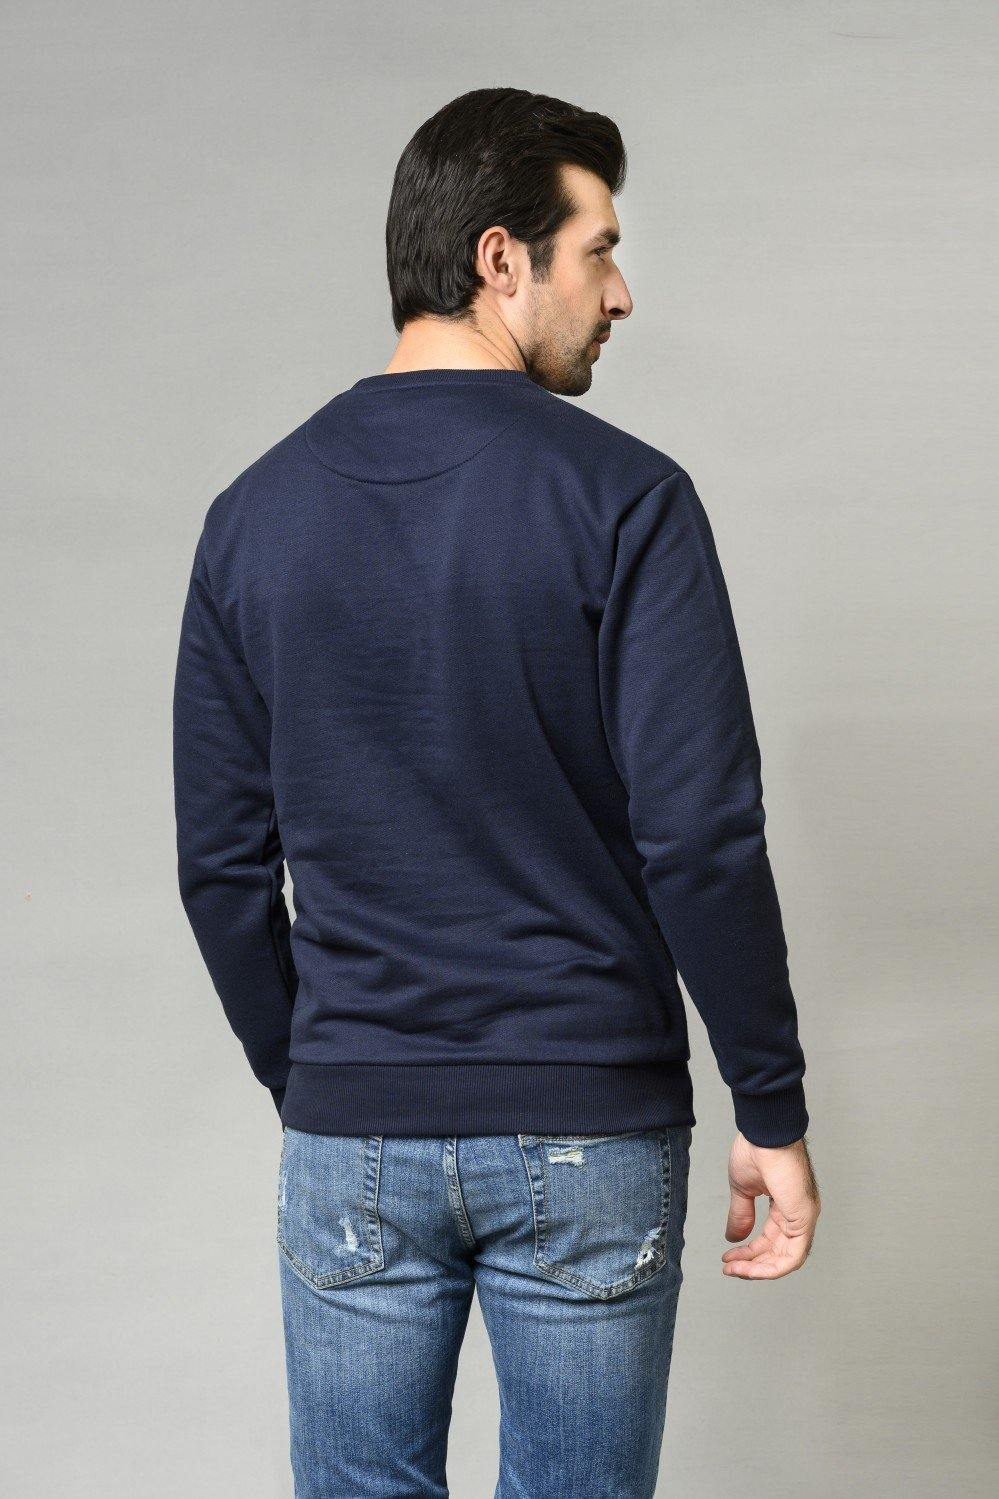 NAVY Sweat Shirt HMSSF20303 - HOPE NOT OUT